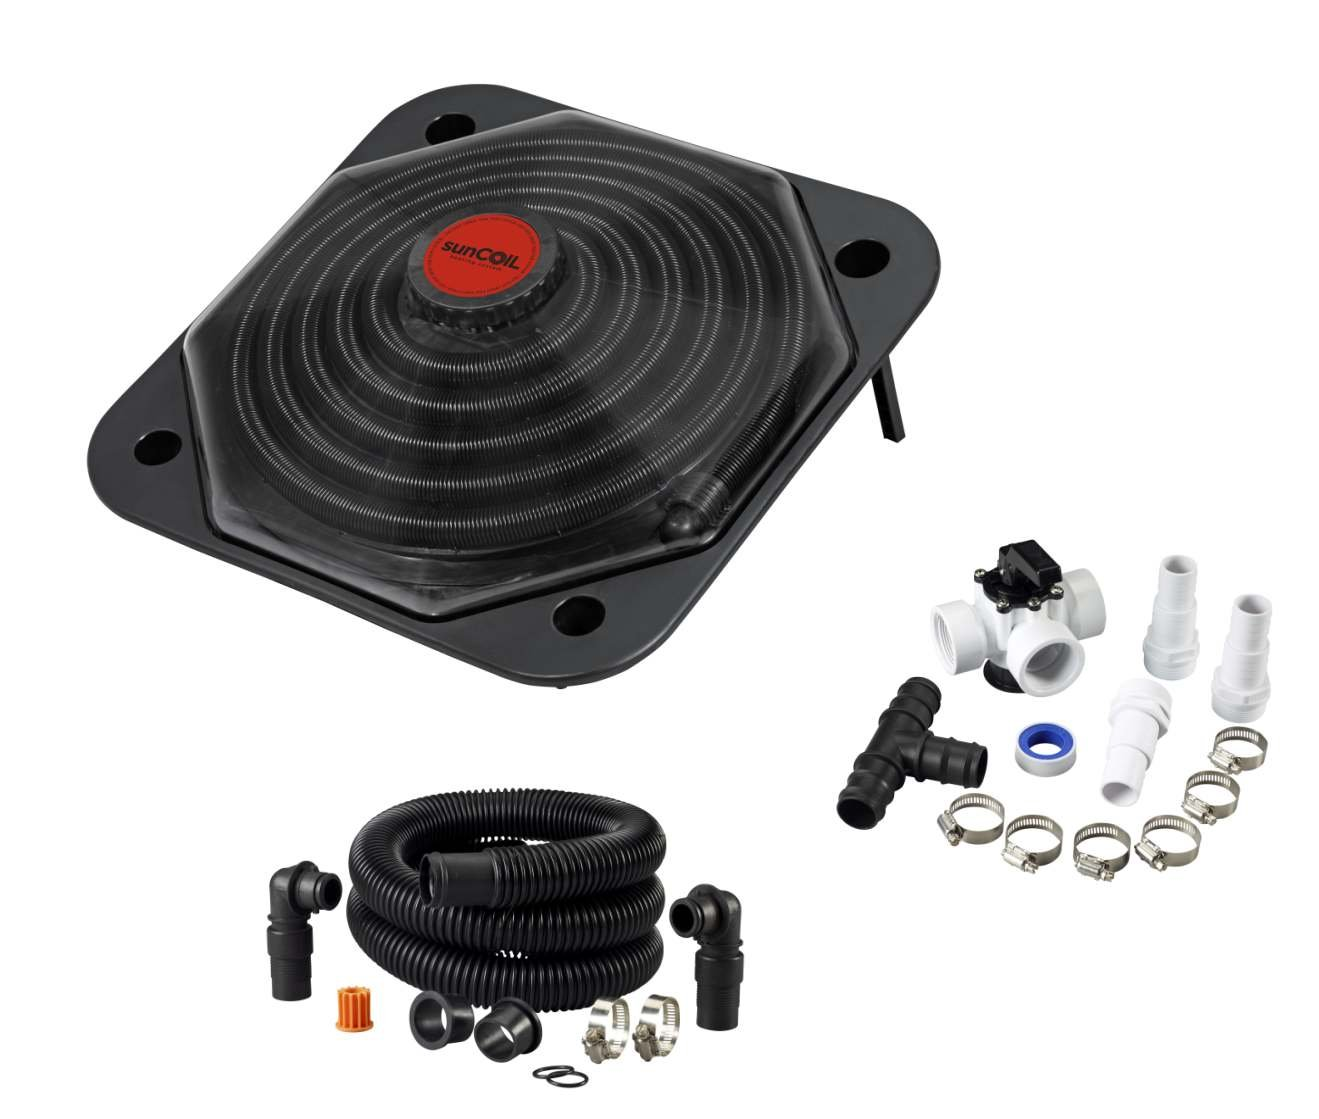 sunCOIL SC-DOME Solar Heater for Above Ground Pools with Free Diverter Valve Kit